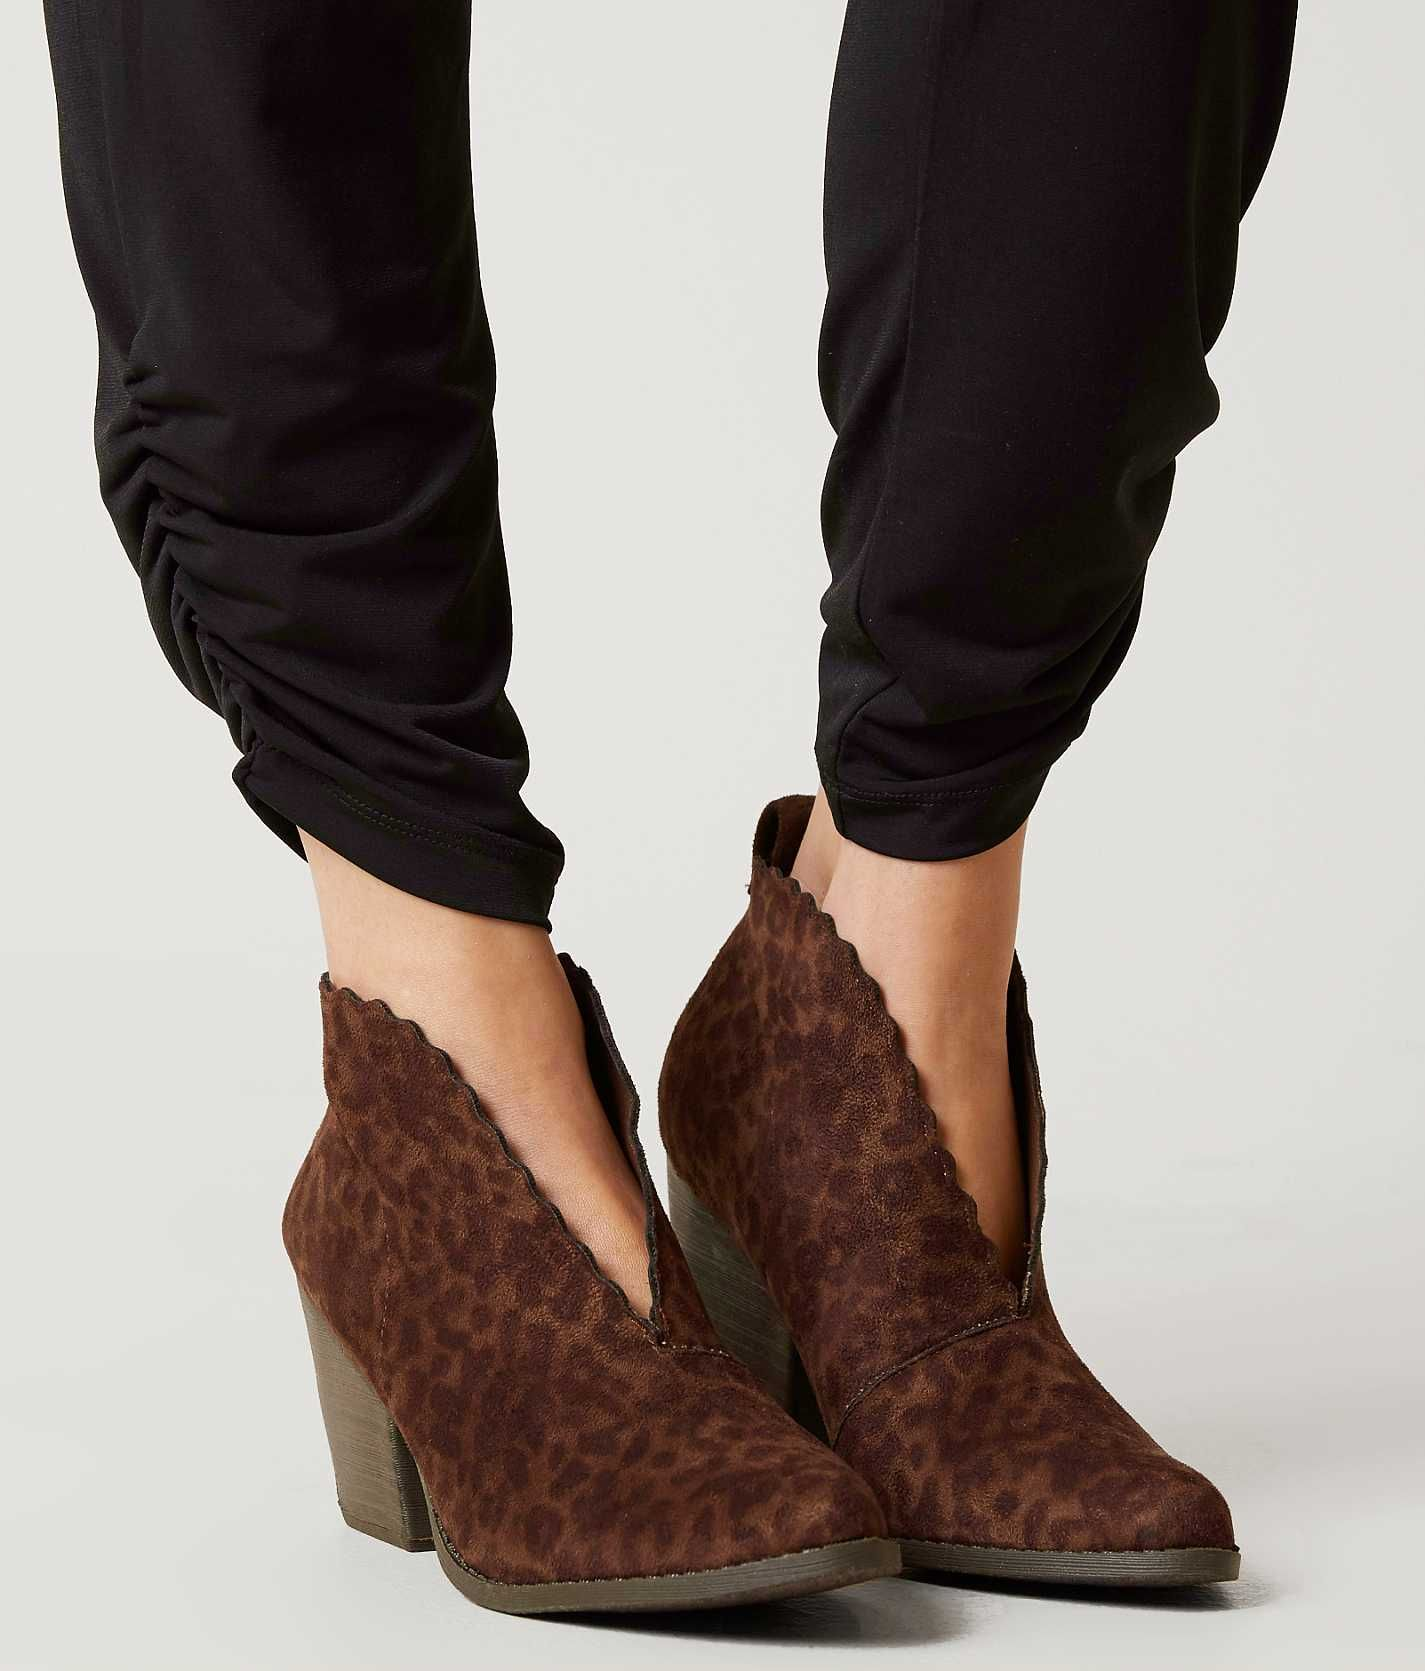 Coconuts By Matisse Addie Ankle Boot - Women's Shoes in Brown Leo